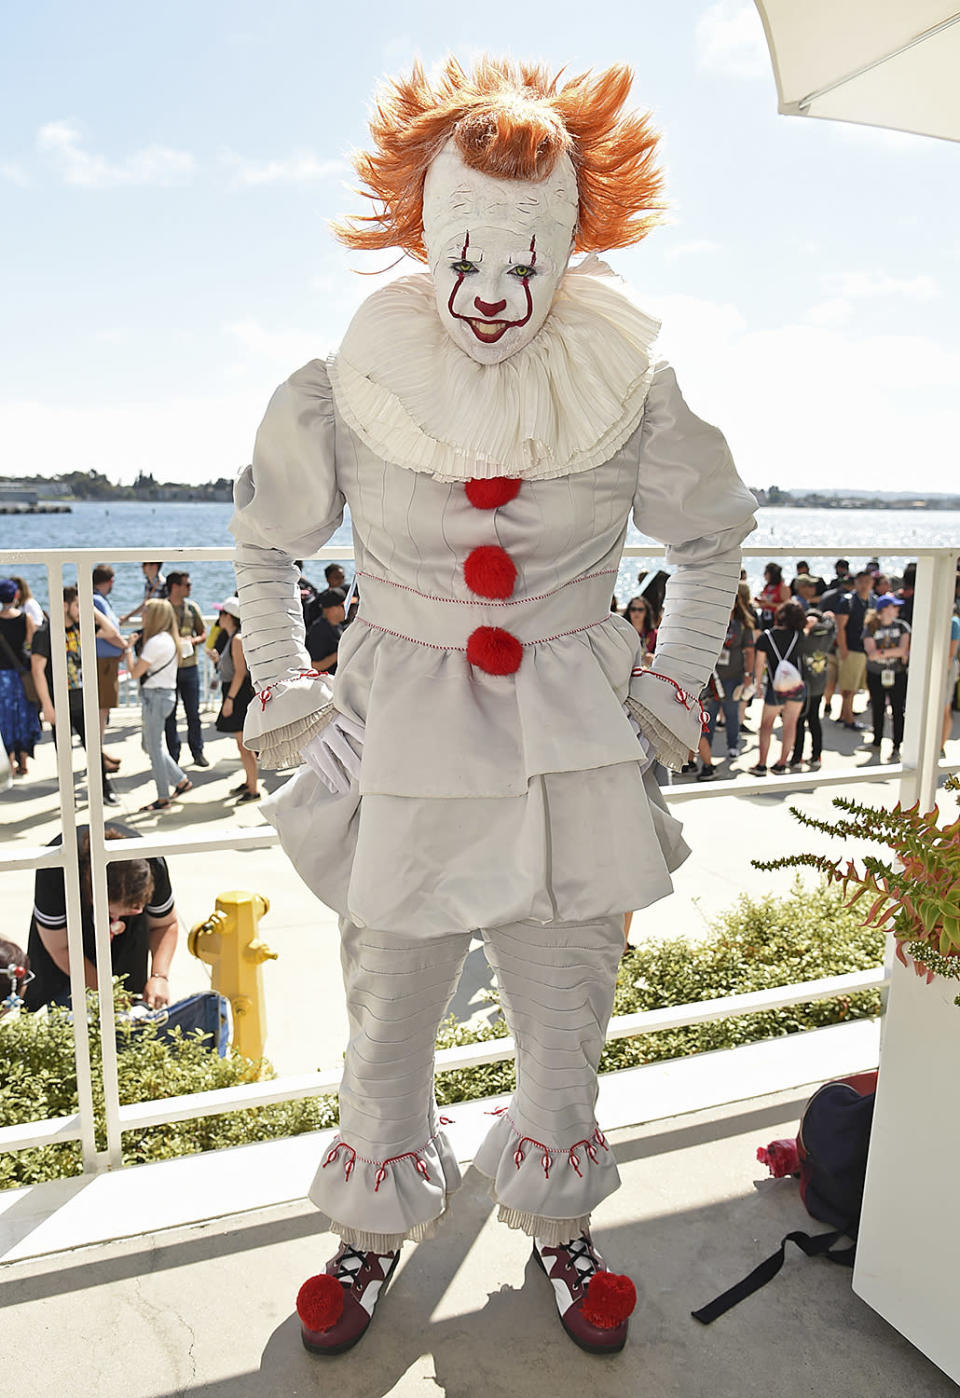 <p>Juliana Bove, of San Diego, dressed as Pennywise from the film <em>It</em>, at Comic-Con International on July 20, 2018, in San Diego. (Photo by Richard Shotwell/Invision/AP) </p>